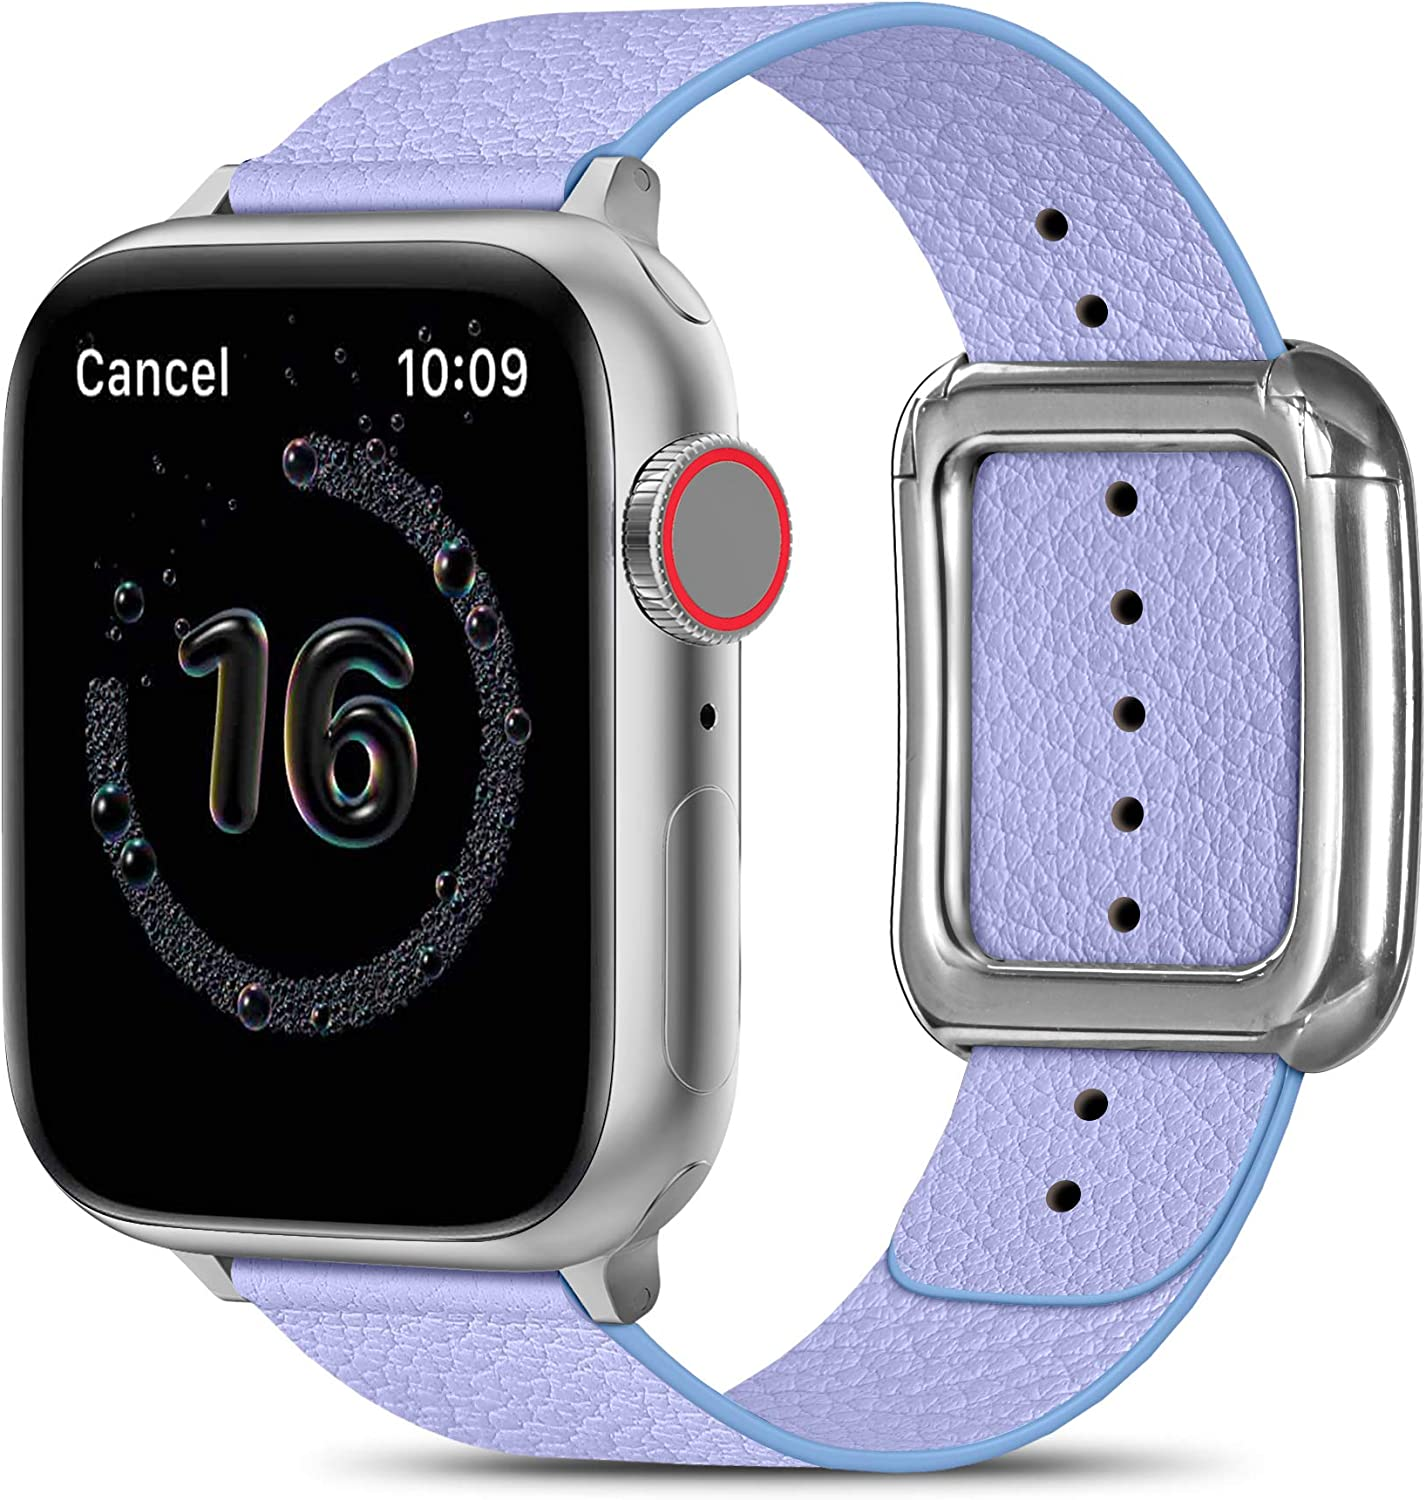 MARGE PLUS Compatible with Apple Watch Bands SE Series 6 5 4 40mm 44mm / Series 3 2 1 38mm 42mm for Men Women, Soft Leather Replacement with Magnetic Clasp for Apple Watch Band - Light Purple/Silver